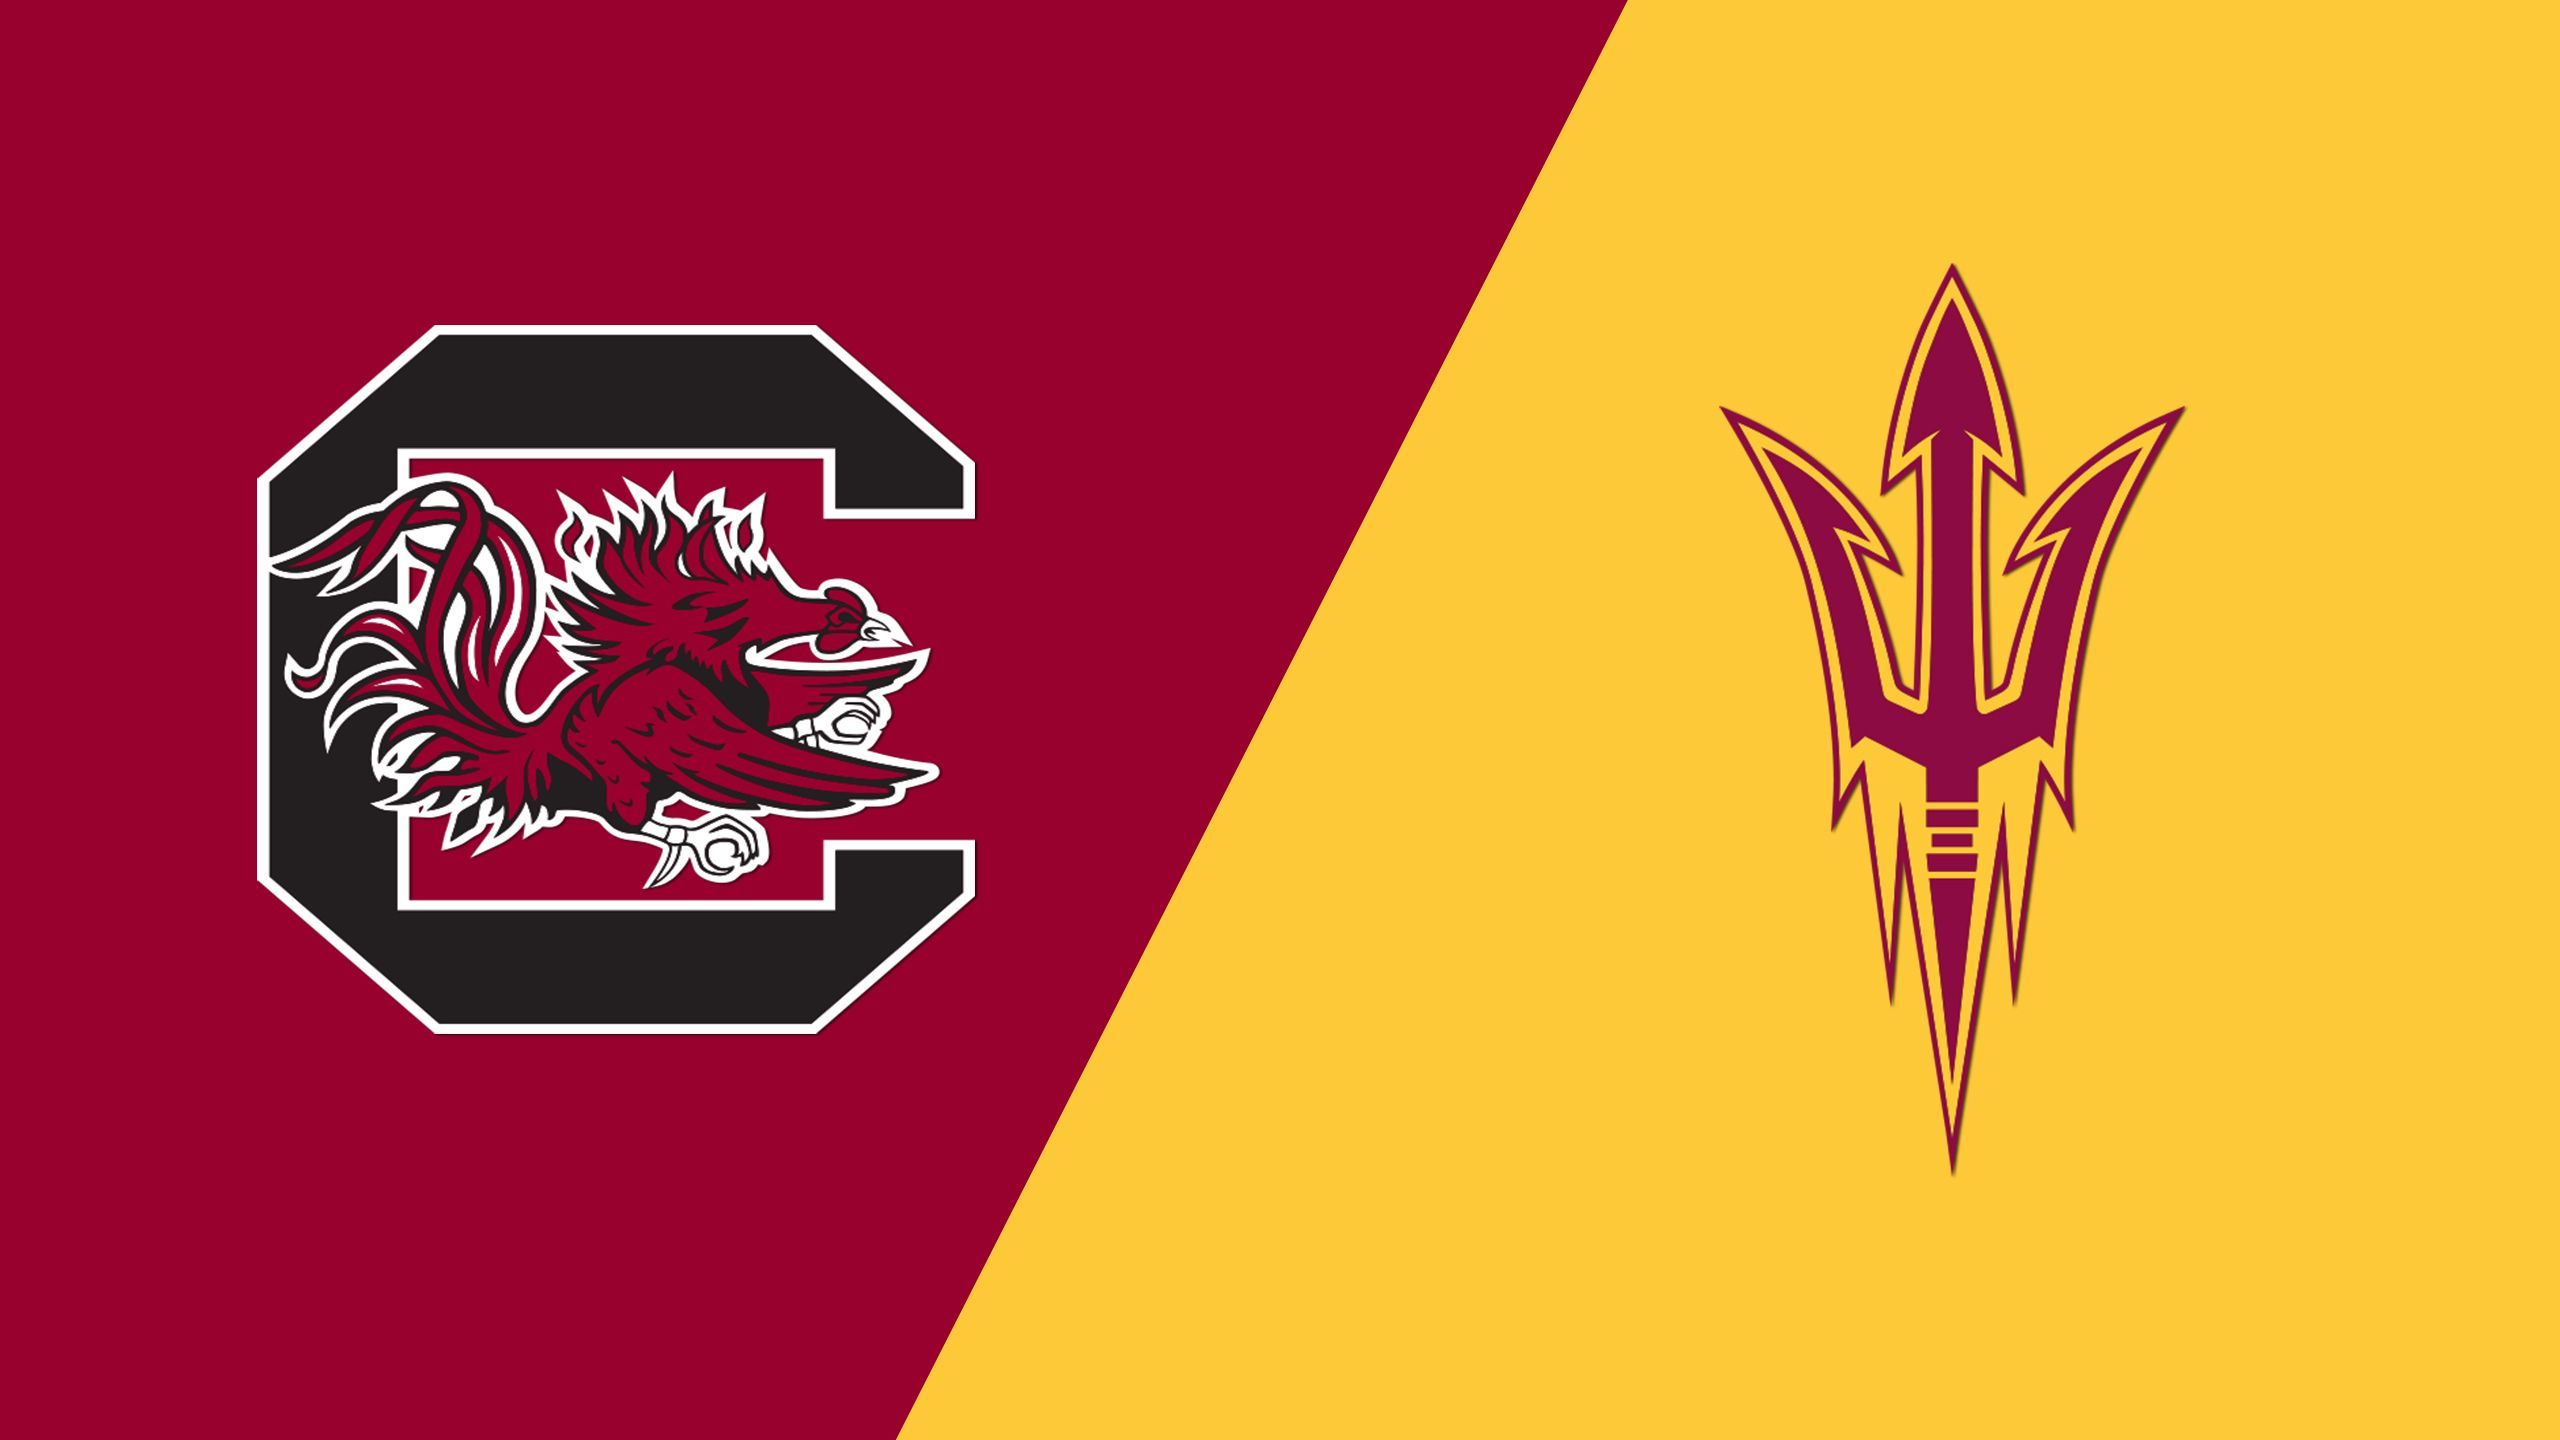 #9 South Carolina vs. #8 Arizona State (Site 8 / Game 1) (NCAA Softball Championship)